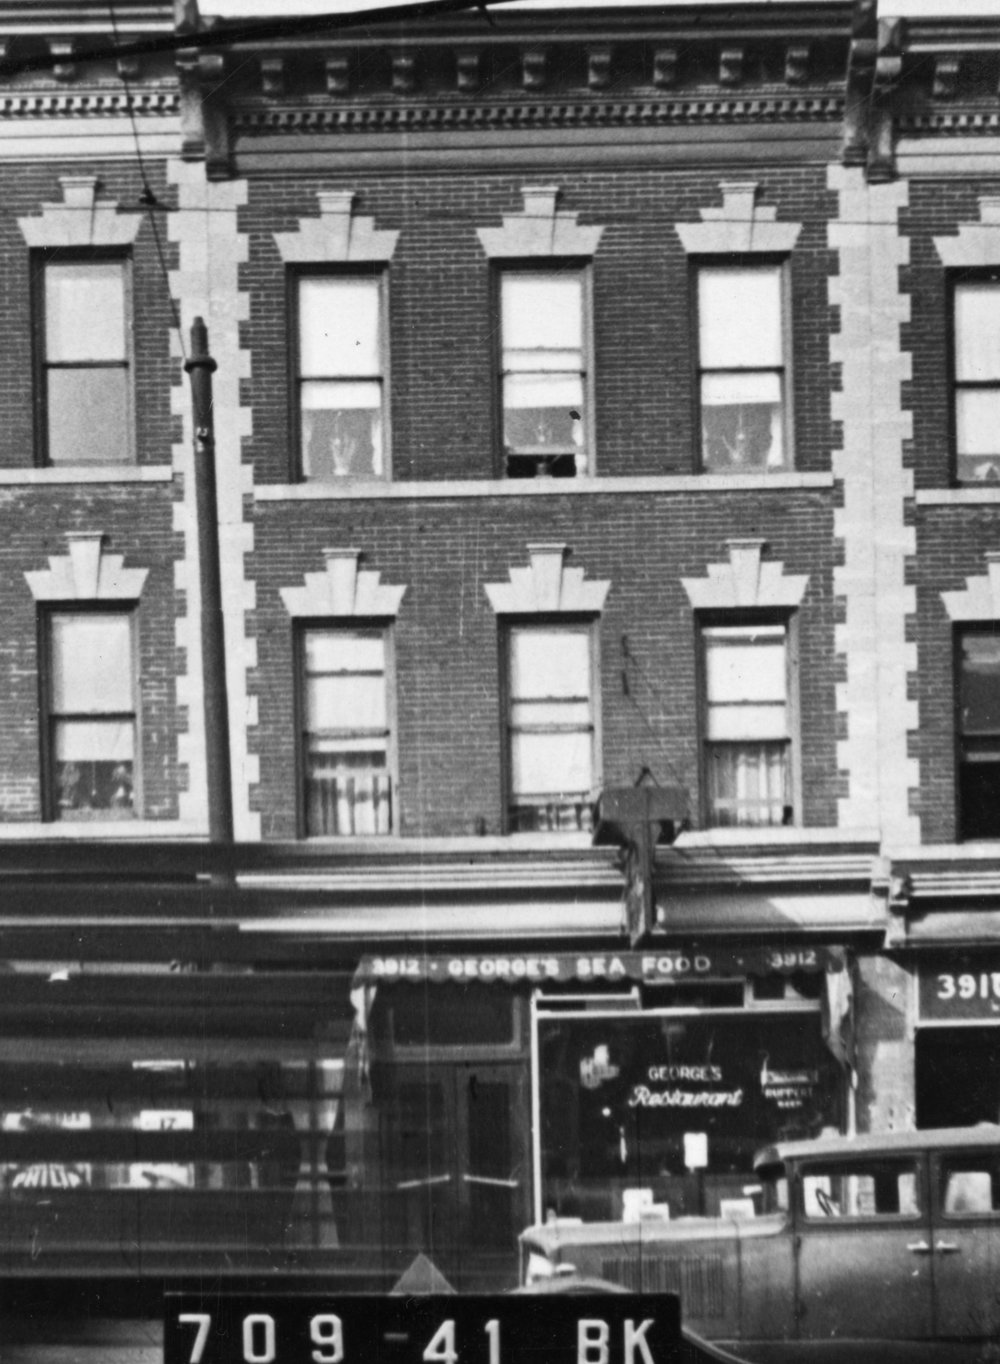 3912 5th Avenue, Brooklyn, NY, circa 1940. Department of Finance Collection, NYC Municipal Archives.